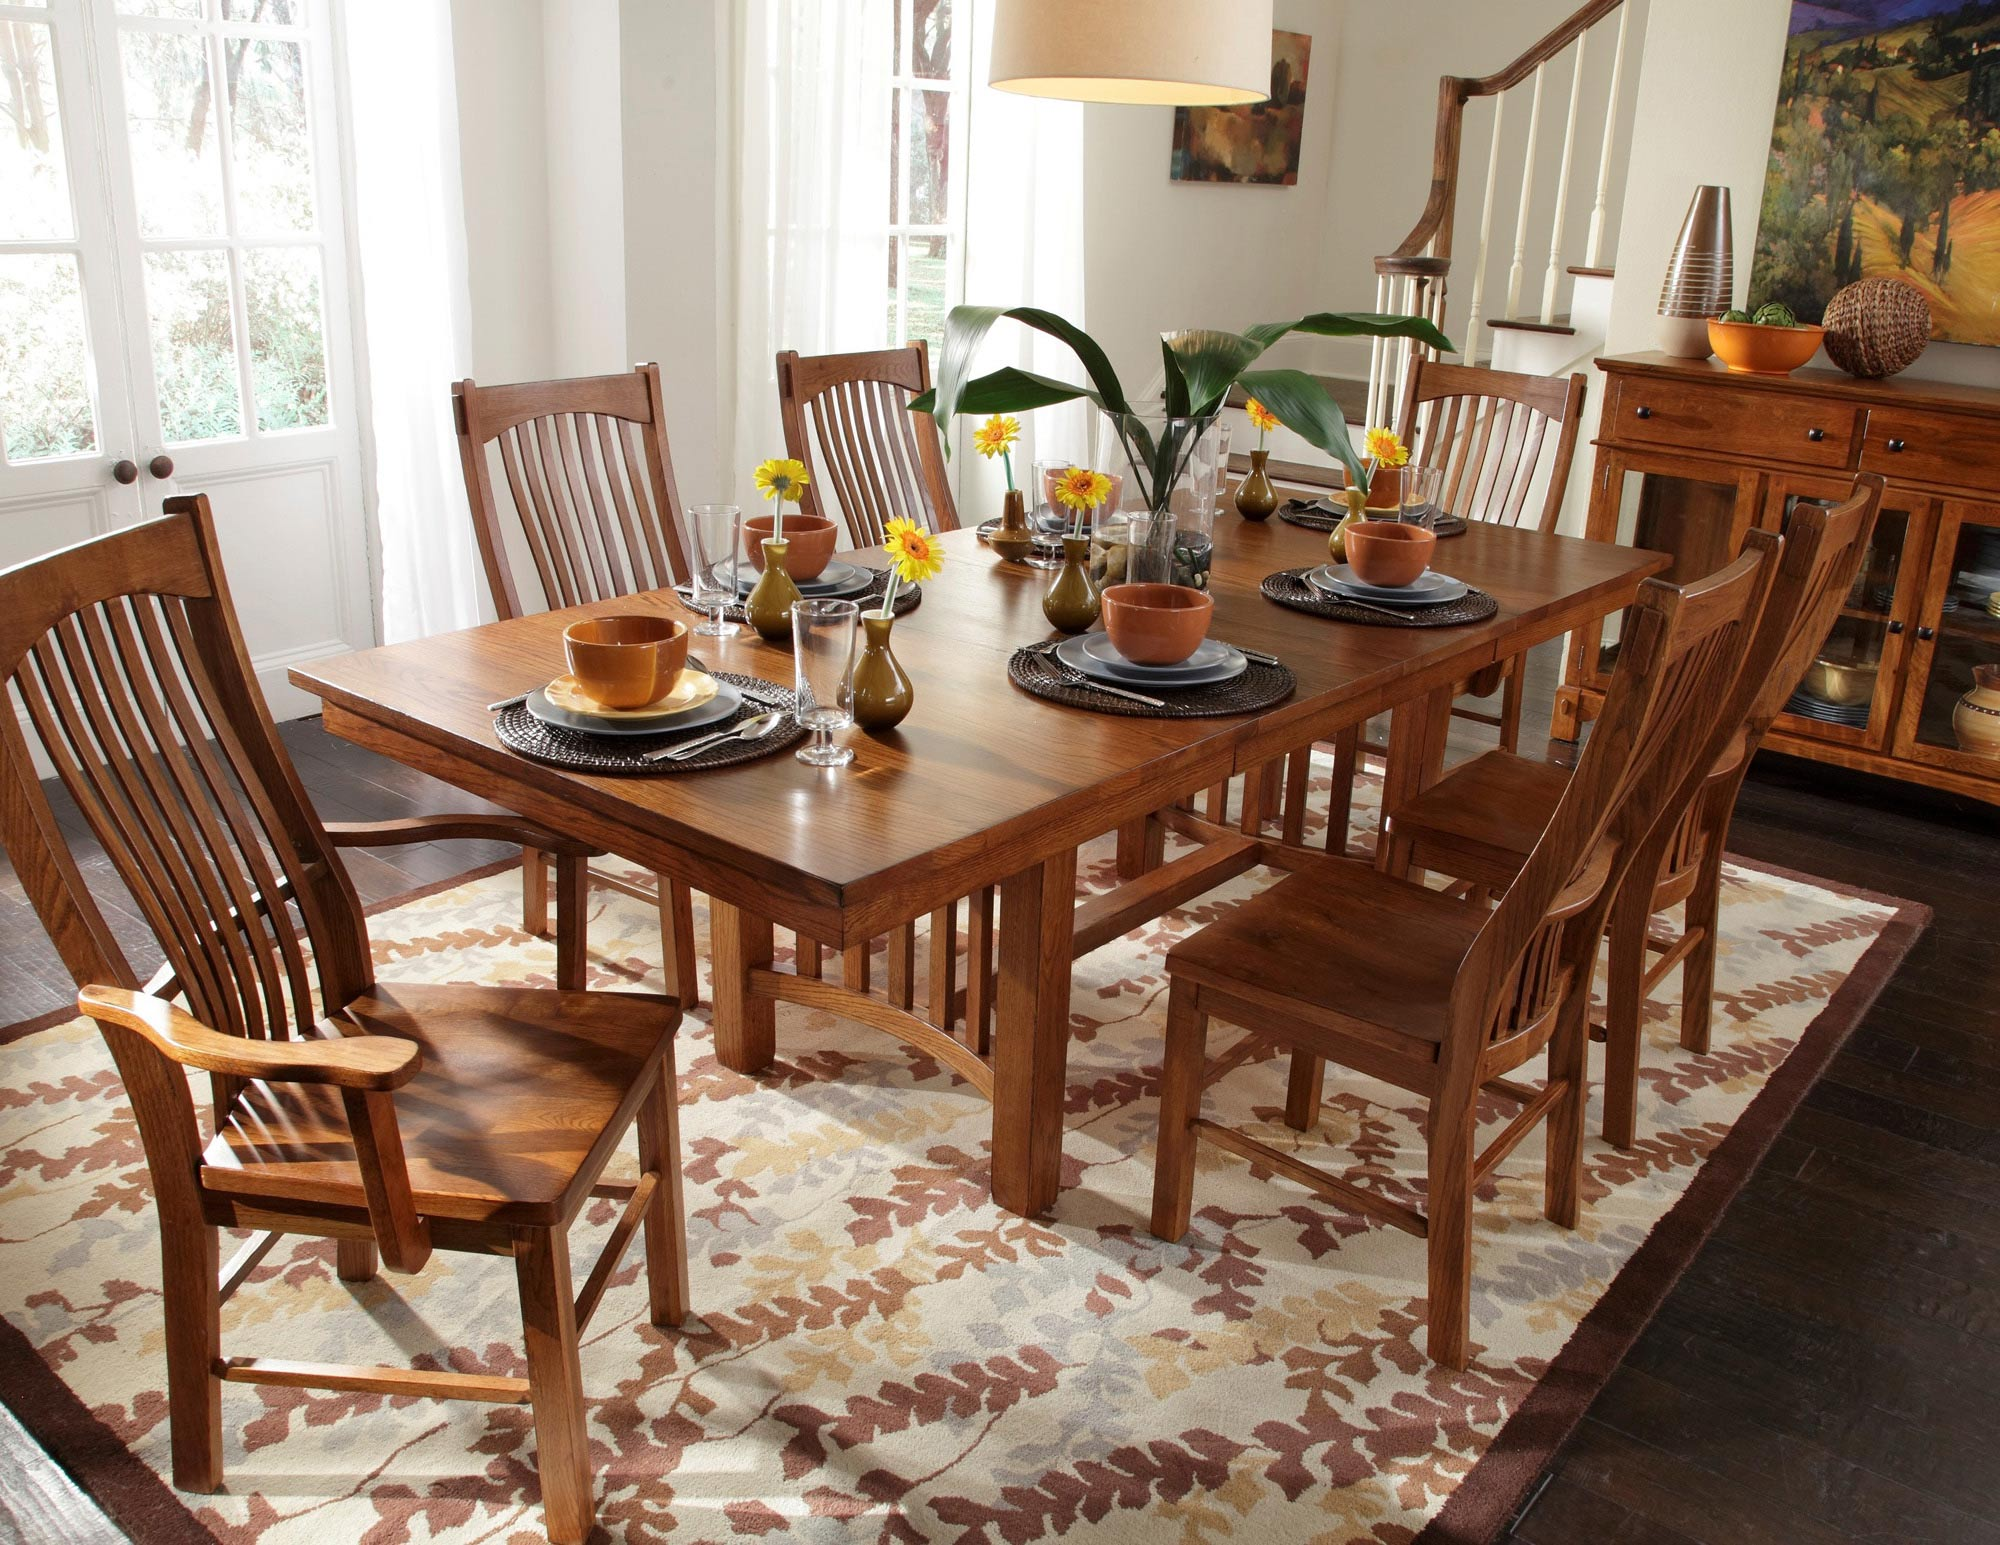 This Is Our Table Set Except With The Bench And No Arm Chairs